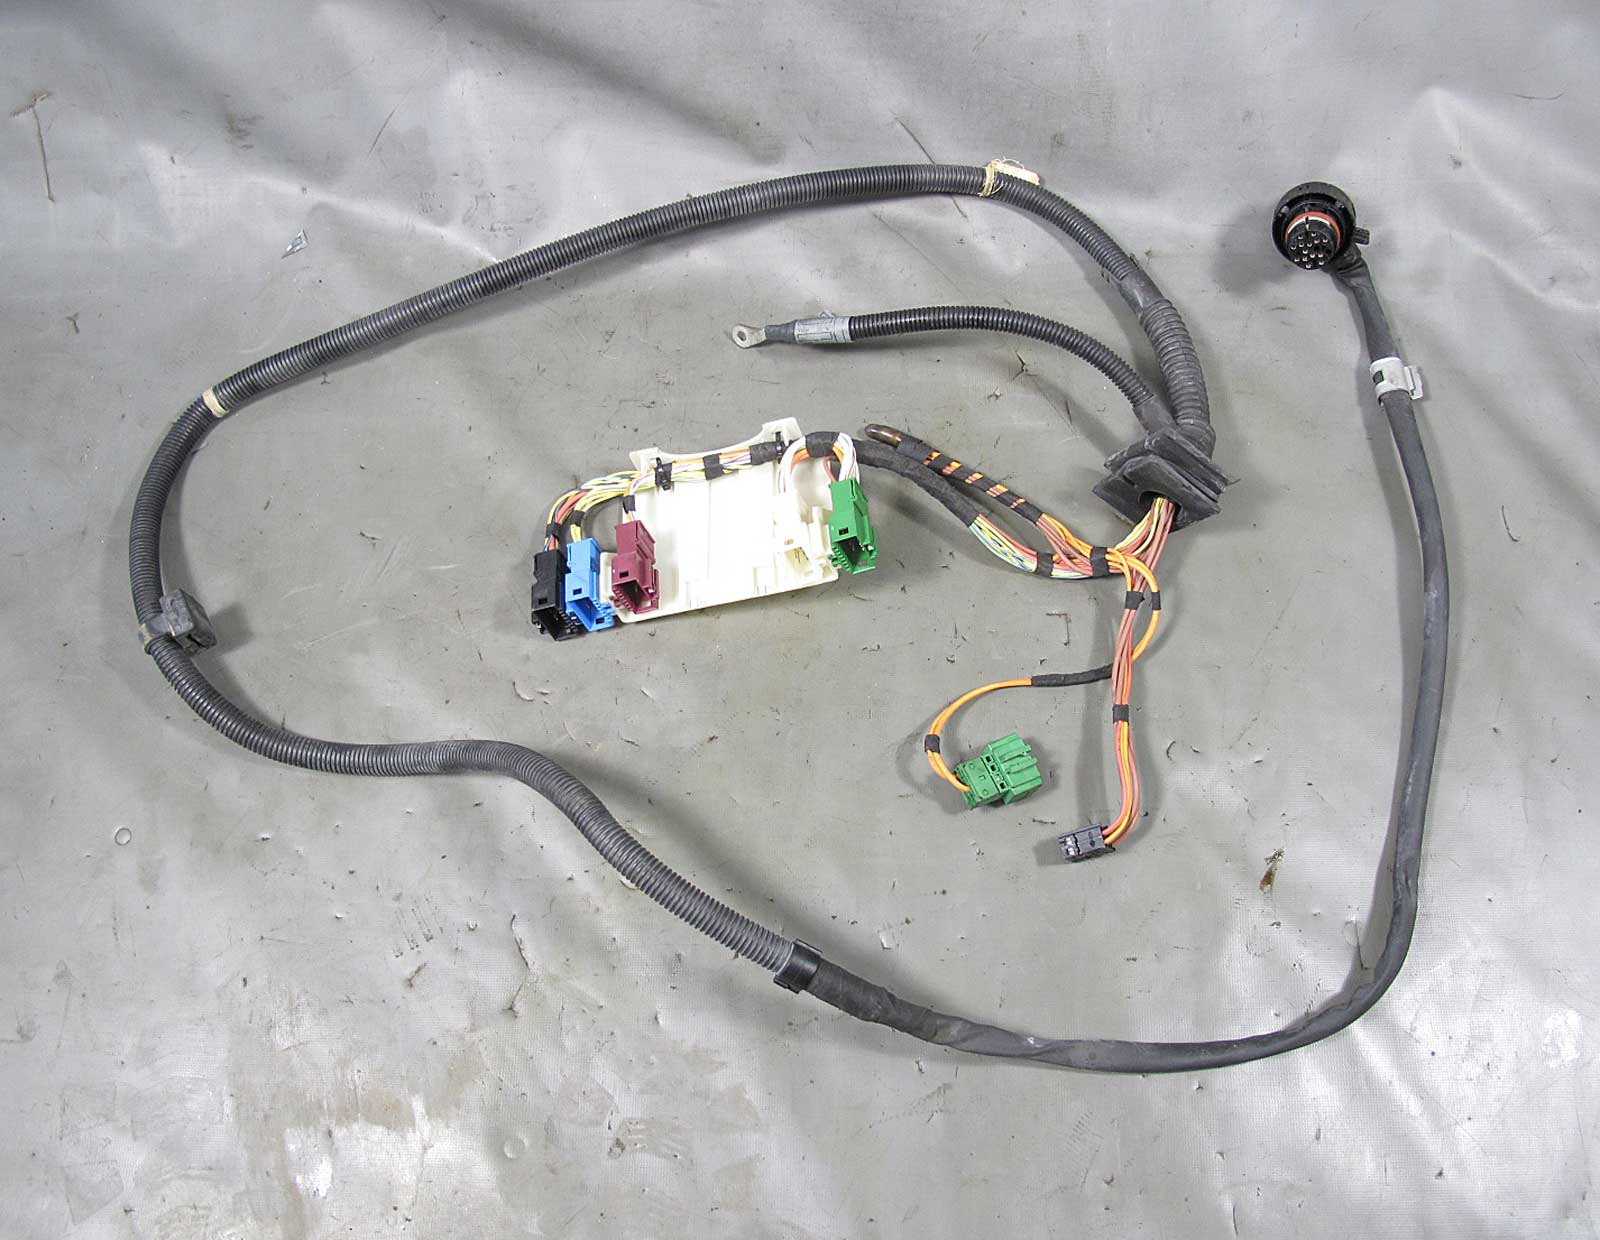 transmission wiring harness replacement cost wiring solutions rh rausco com bmw wiring harness replacement cost transmission wiring harness replacement cost